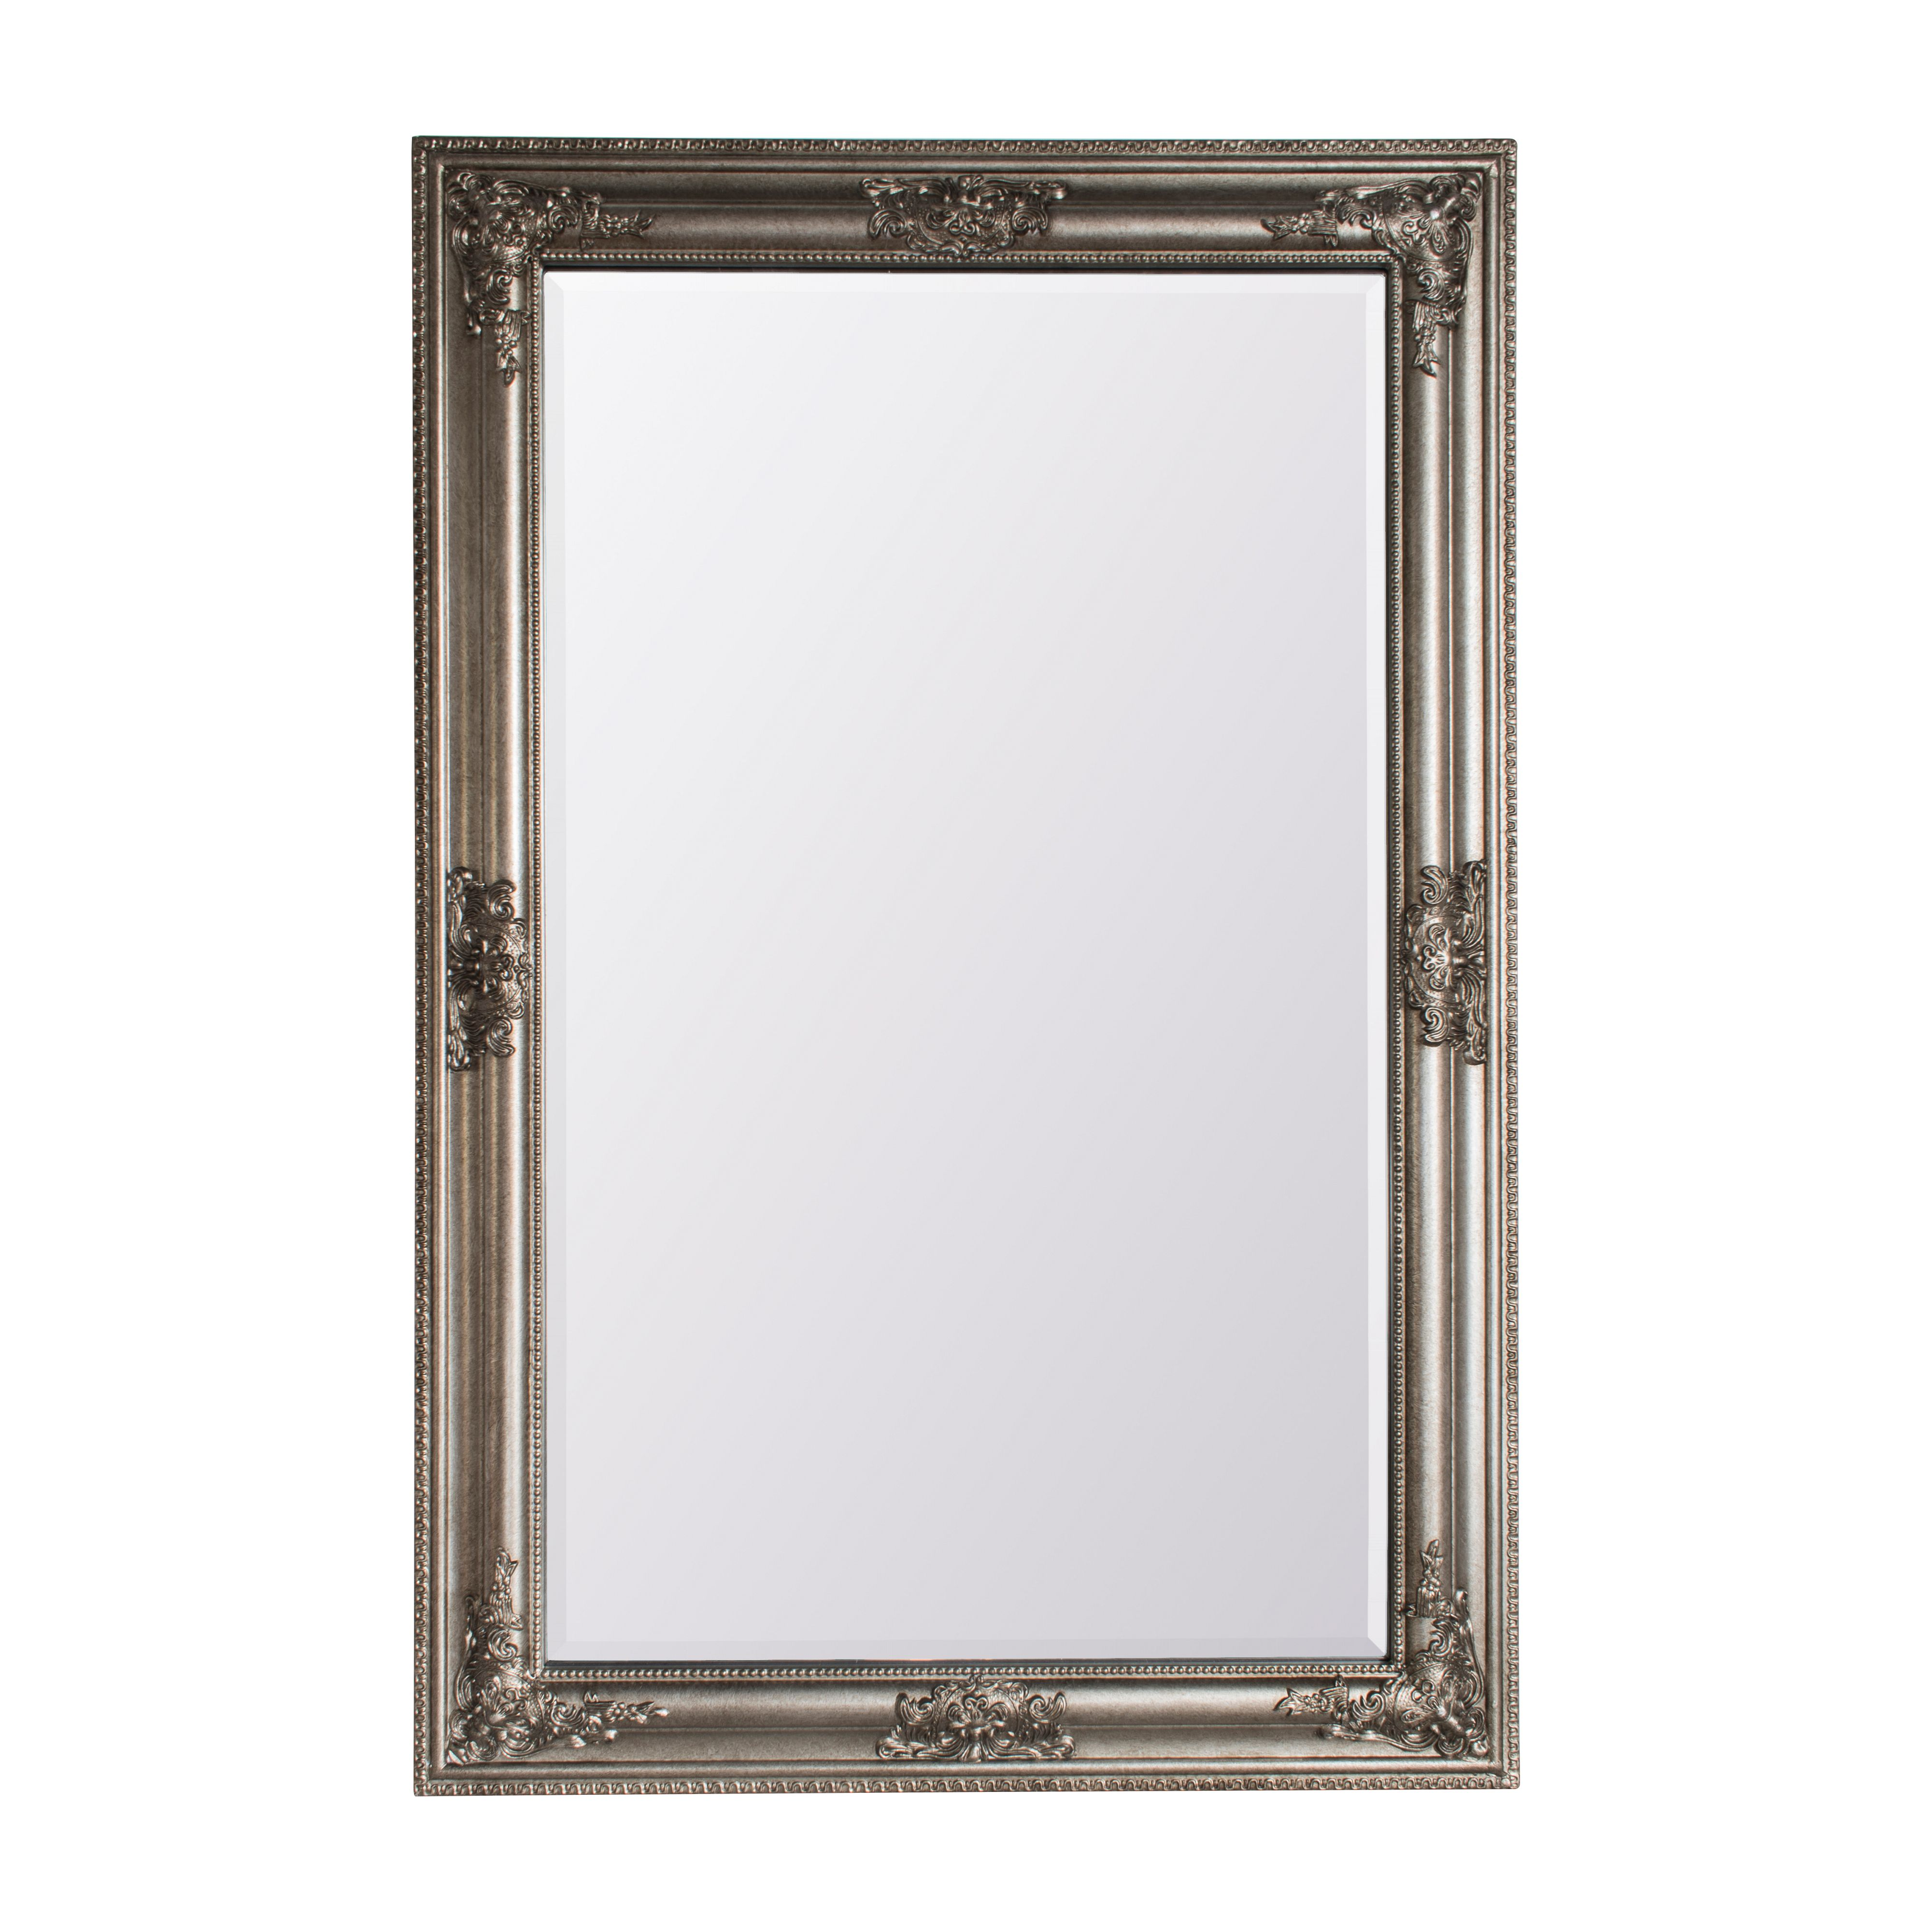 Buy cheap 60 x mirror compare house accessories prices for Cheap silver mirrors